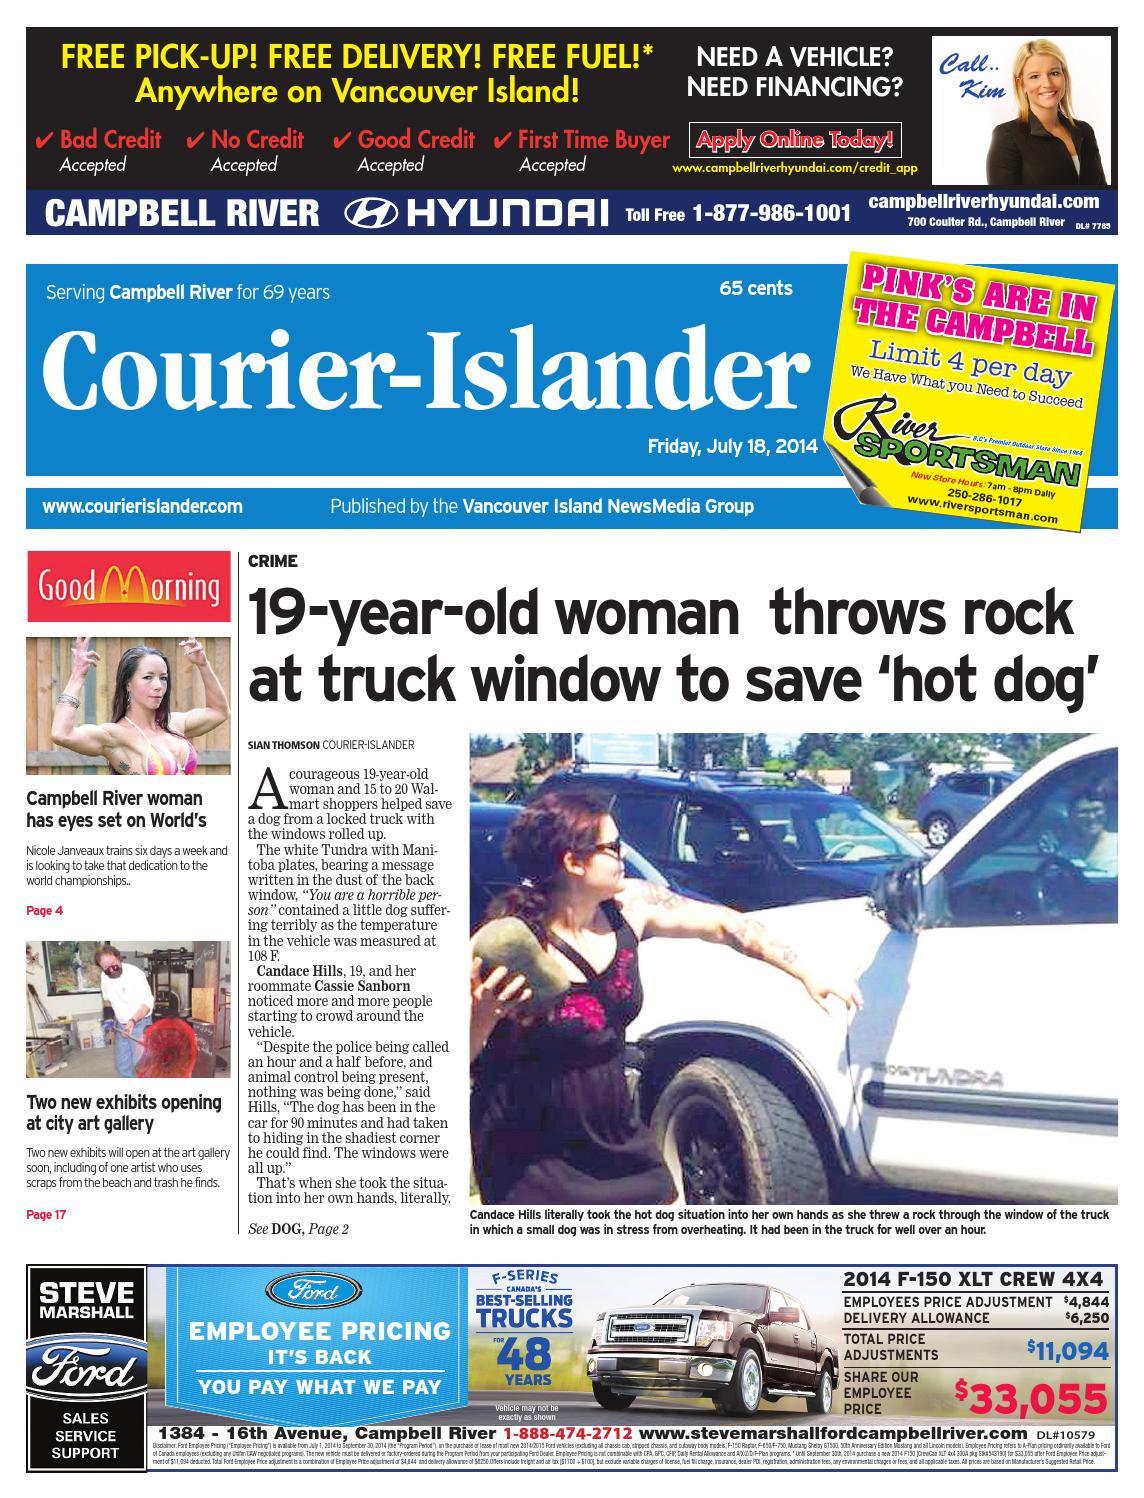 Campbell River Courier Islander